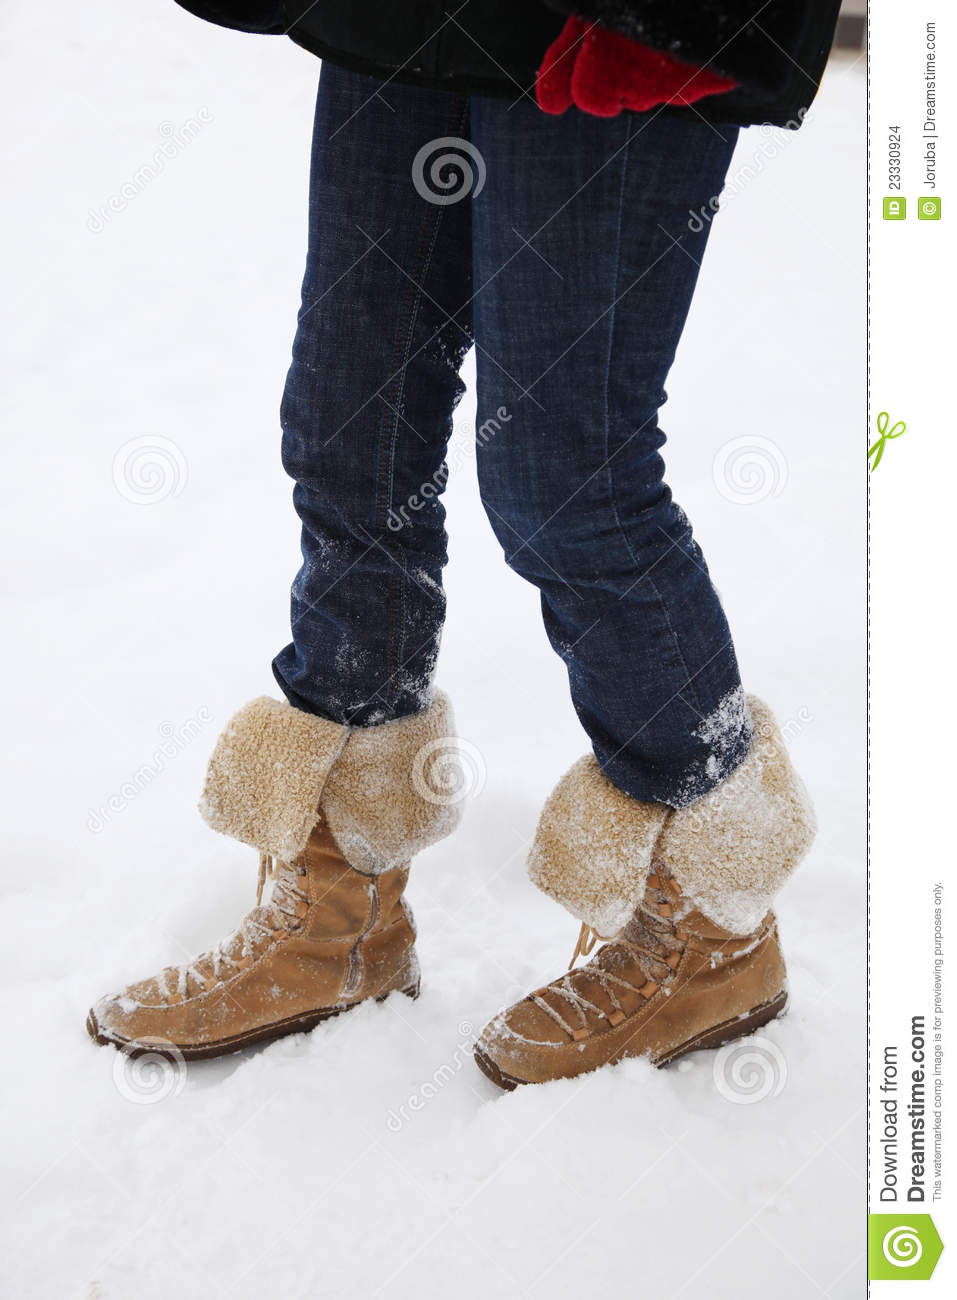 Boots For Snow HSIr9enX